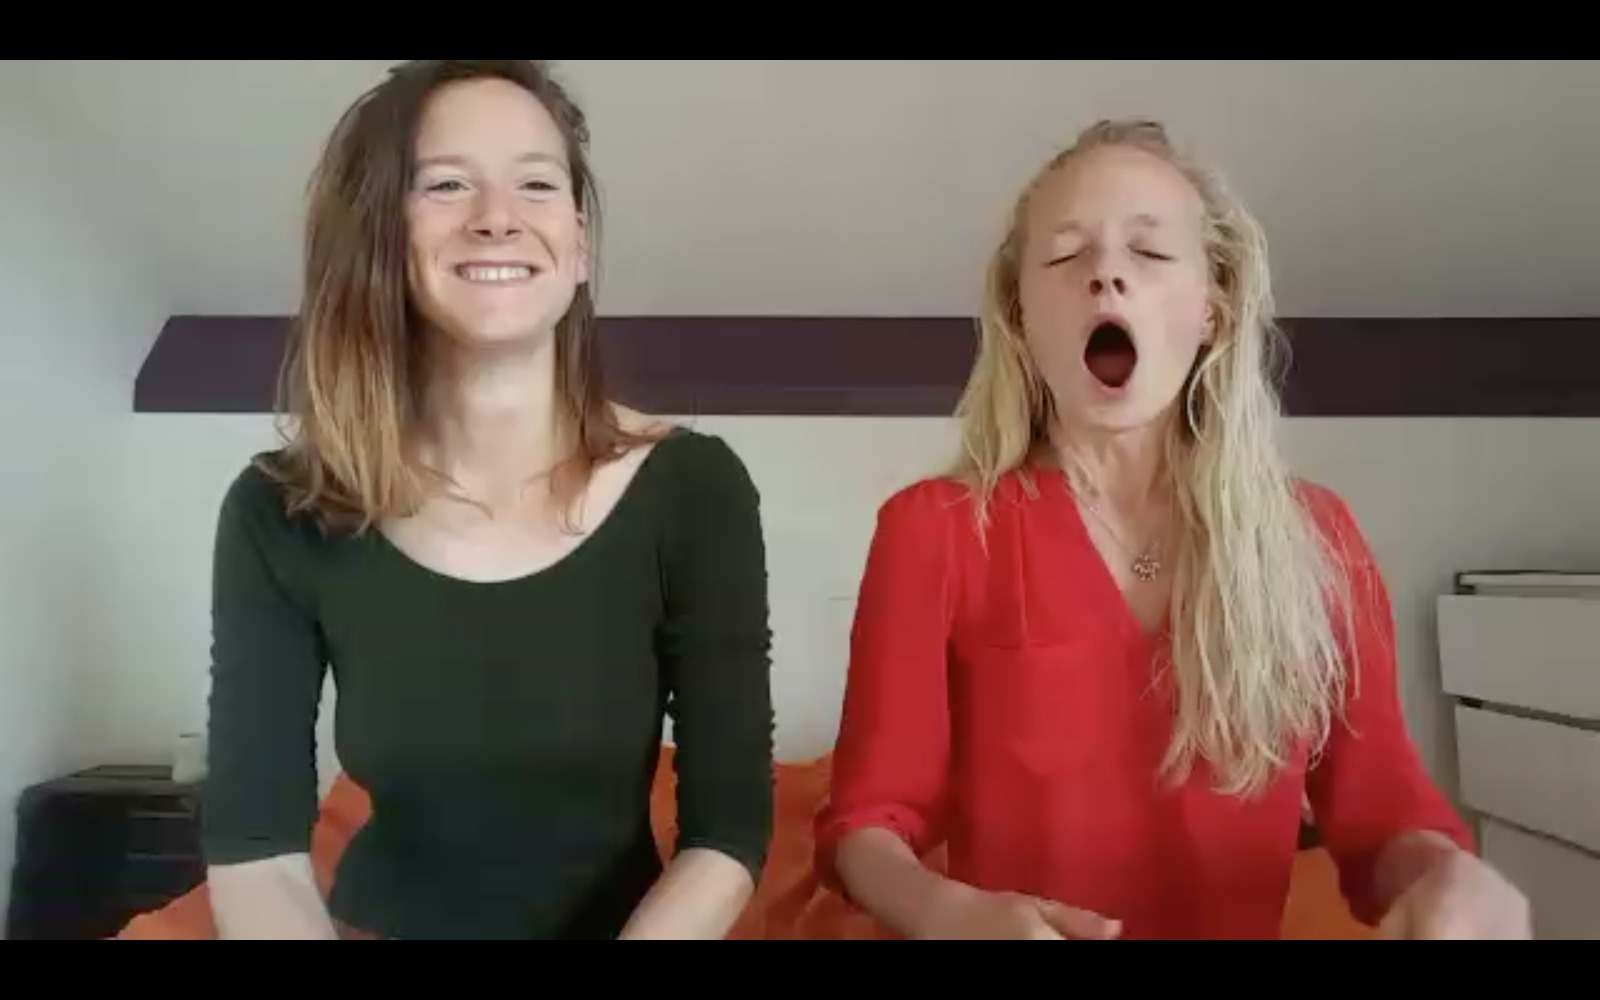 21 dayswaking up with Rashma & Eva - Ready to wake up with Rashma & Eva?21 minutes of inspiration, joy and focus in your mailbox each morning for 21 days, 21 euro's (excl. BTW).PS. Don't forget to add your email on the next page, as we will send you the video's by mail :)